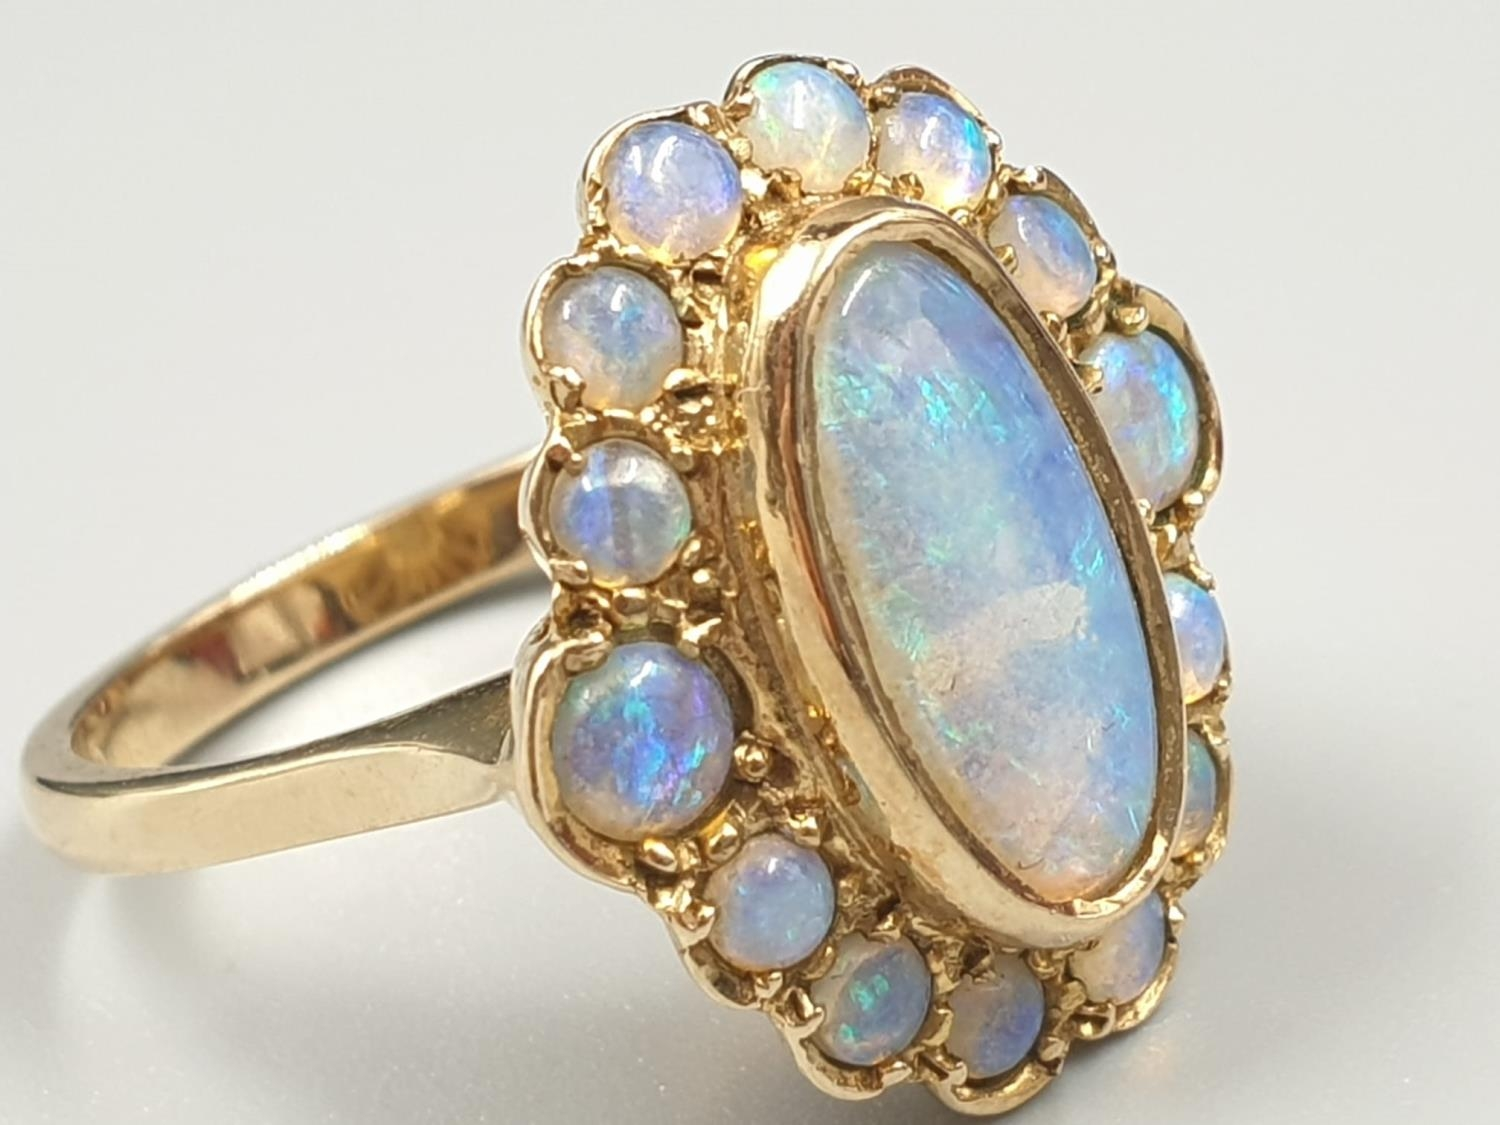 9K YELLOW GOLD VINTAGE OPAL CLUSTER RING WEIGHT 4.3G SIZE N - Image 2 of 7